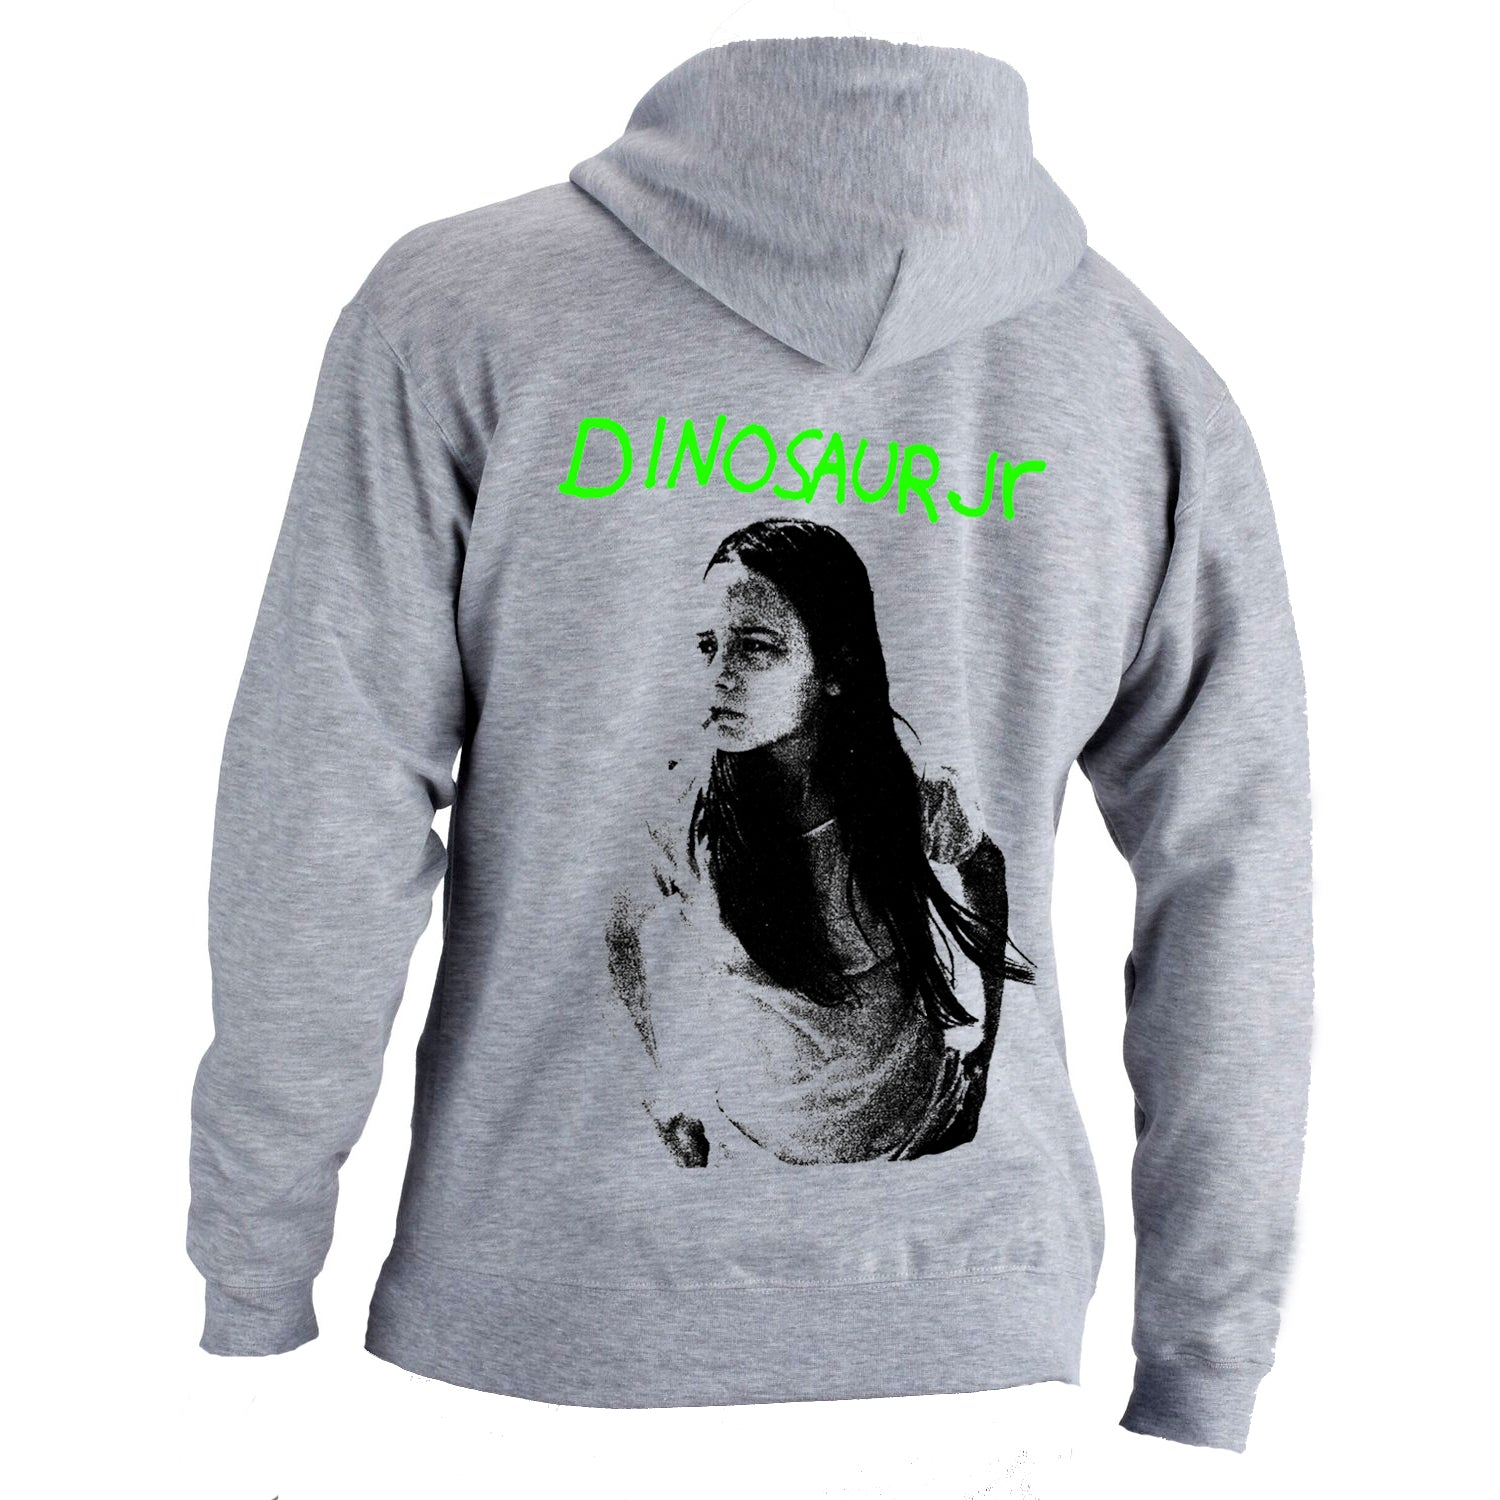 Dinosaur Jr Green Mind design on a grey Hoodie T-shirt